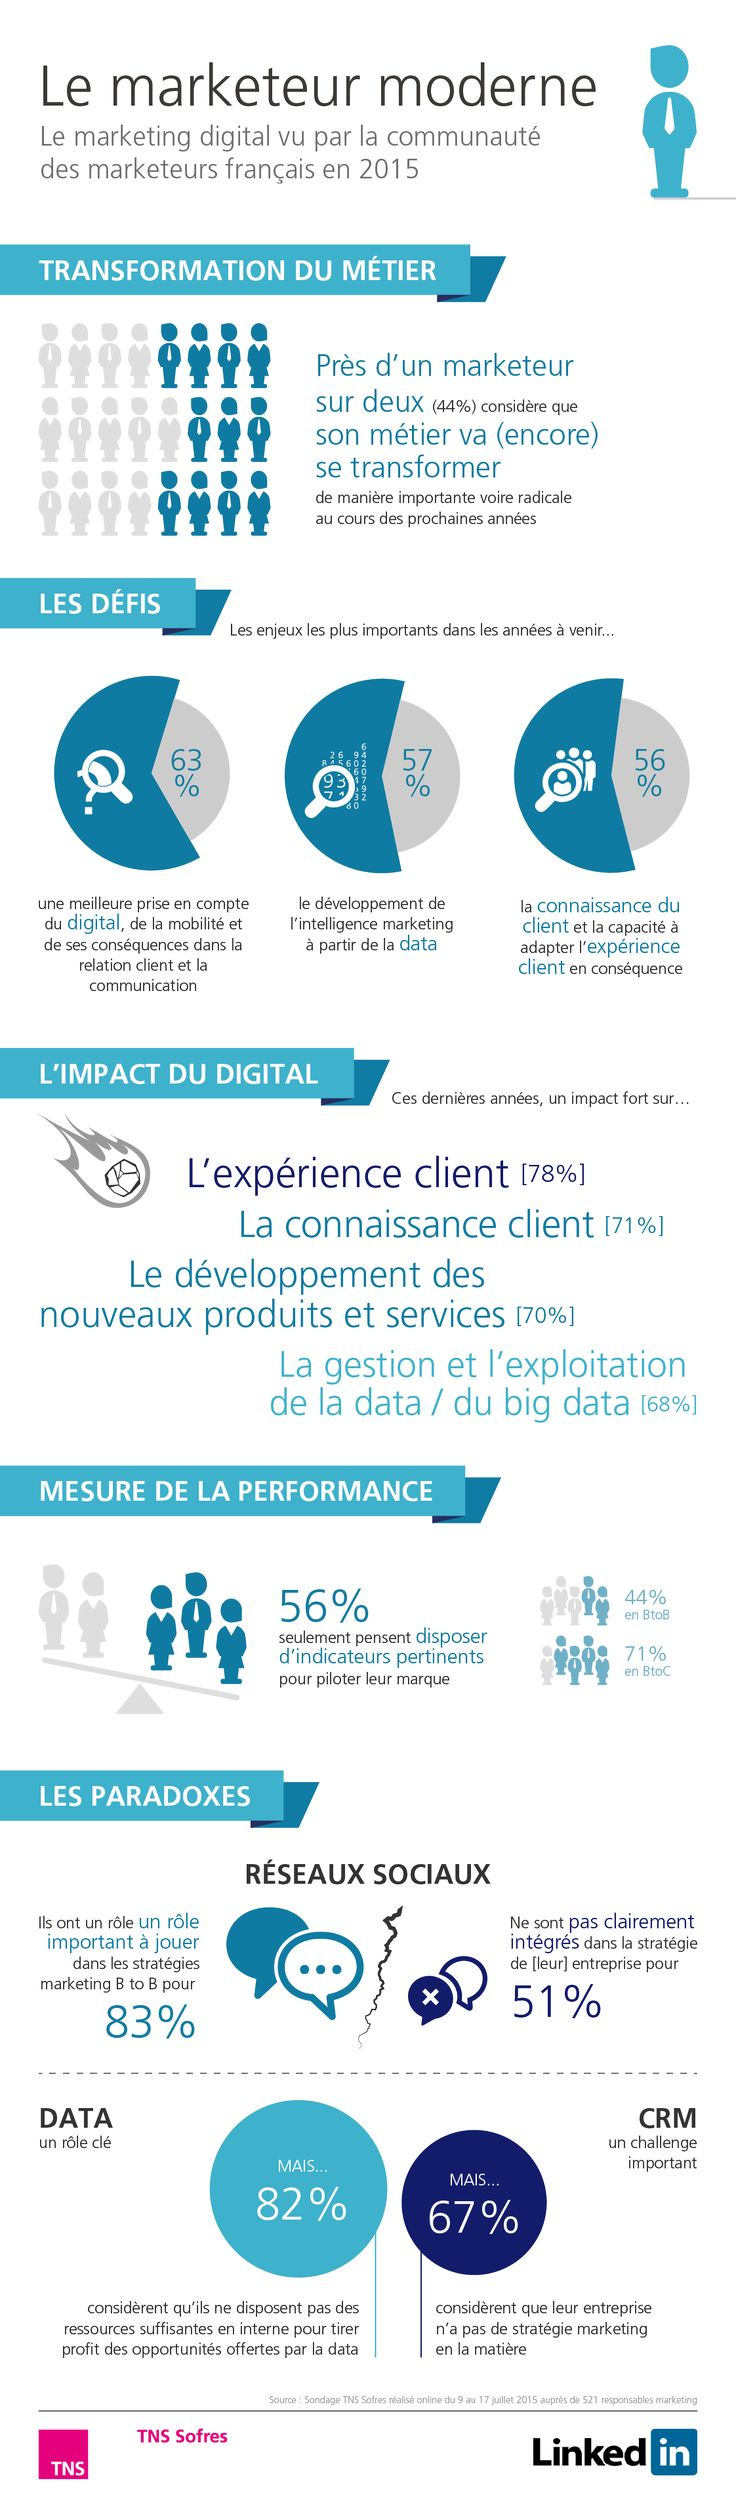 Transformation digitale : quel impact pour les responsables marketing ? http://www.tns-sofres.com/etudes-et-points-de-vue/transformation-digitale-quel-impact-pour-les-responsables-marketing